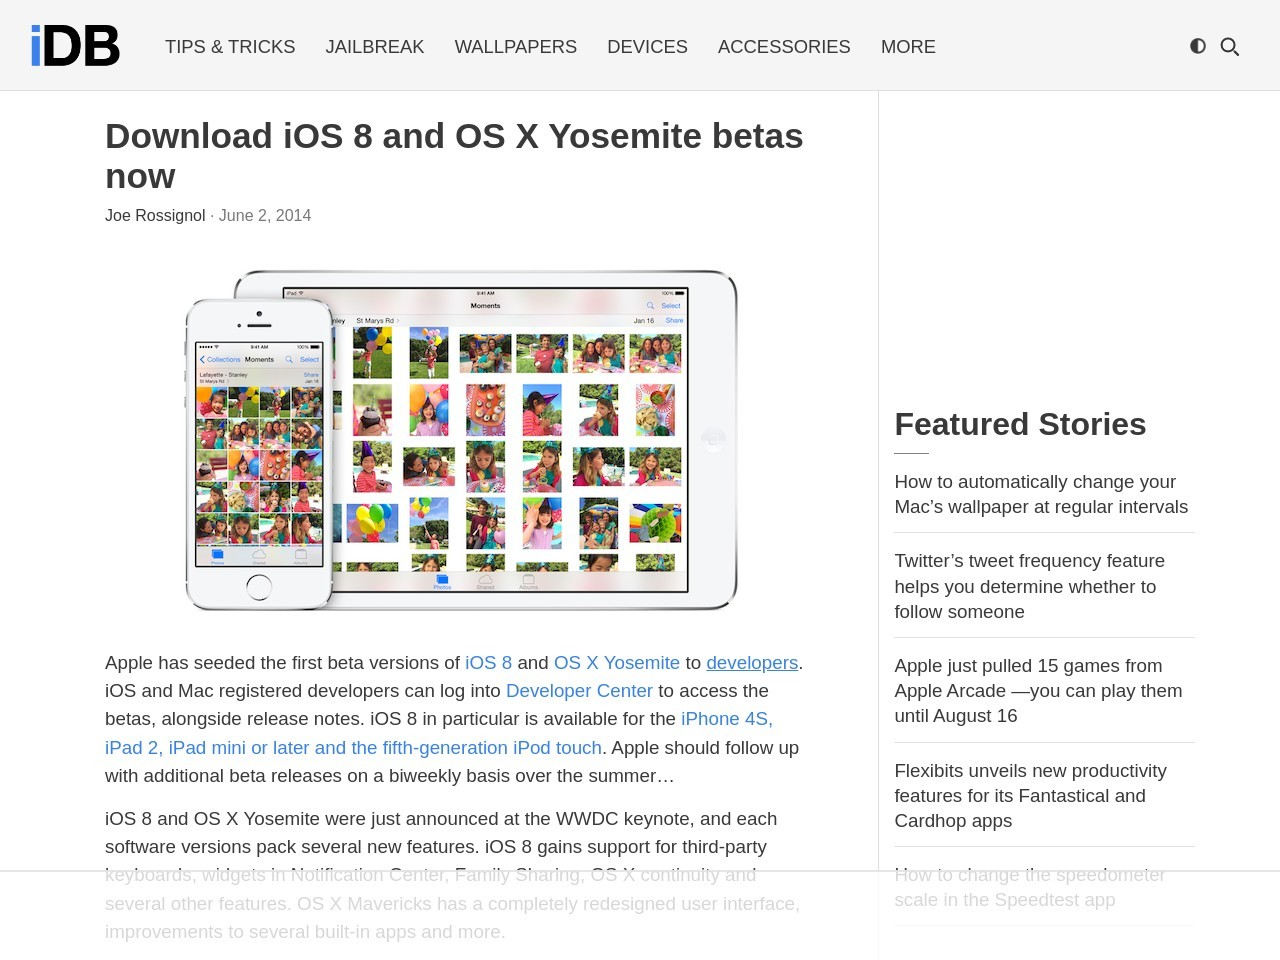 Download iOS 8 and OS X Yosemite betas now